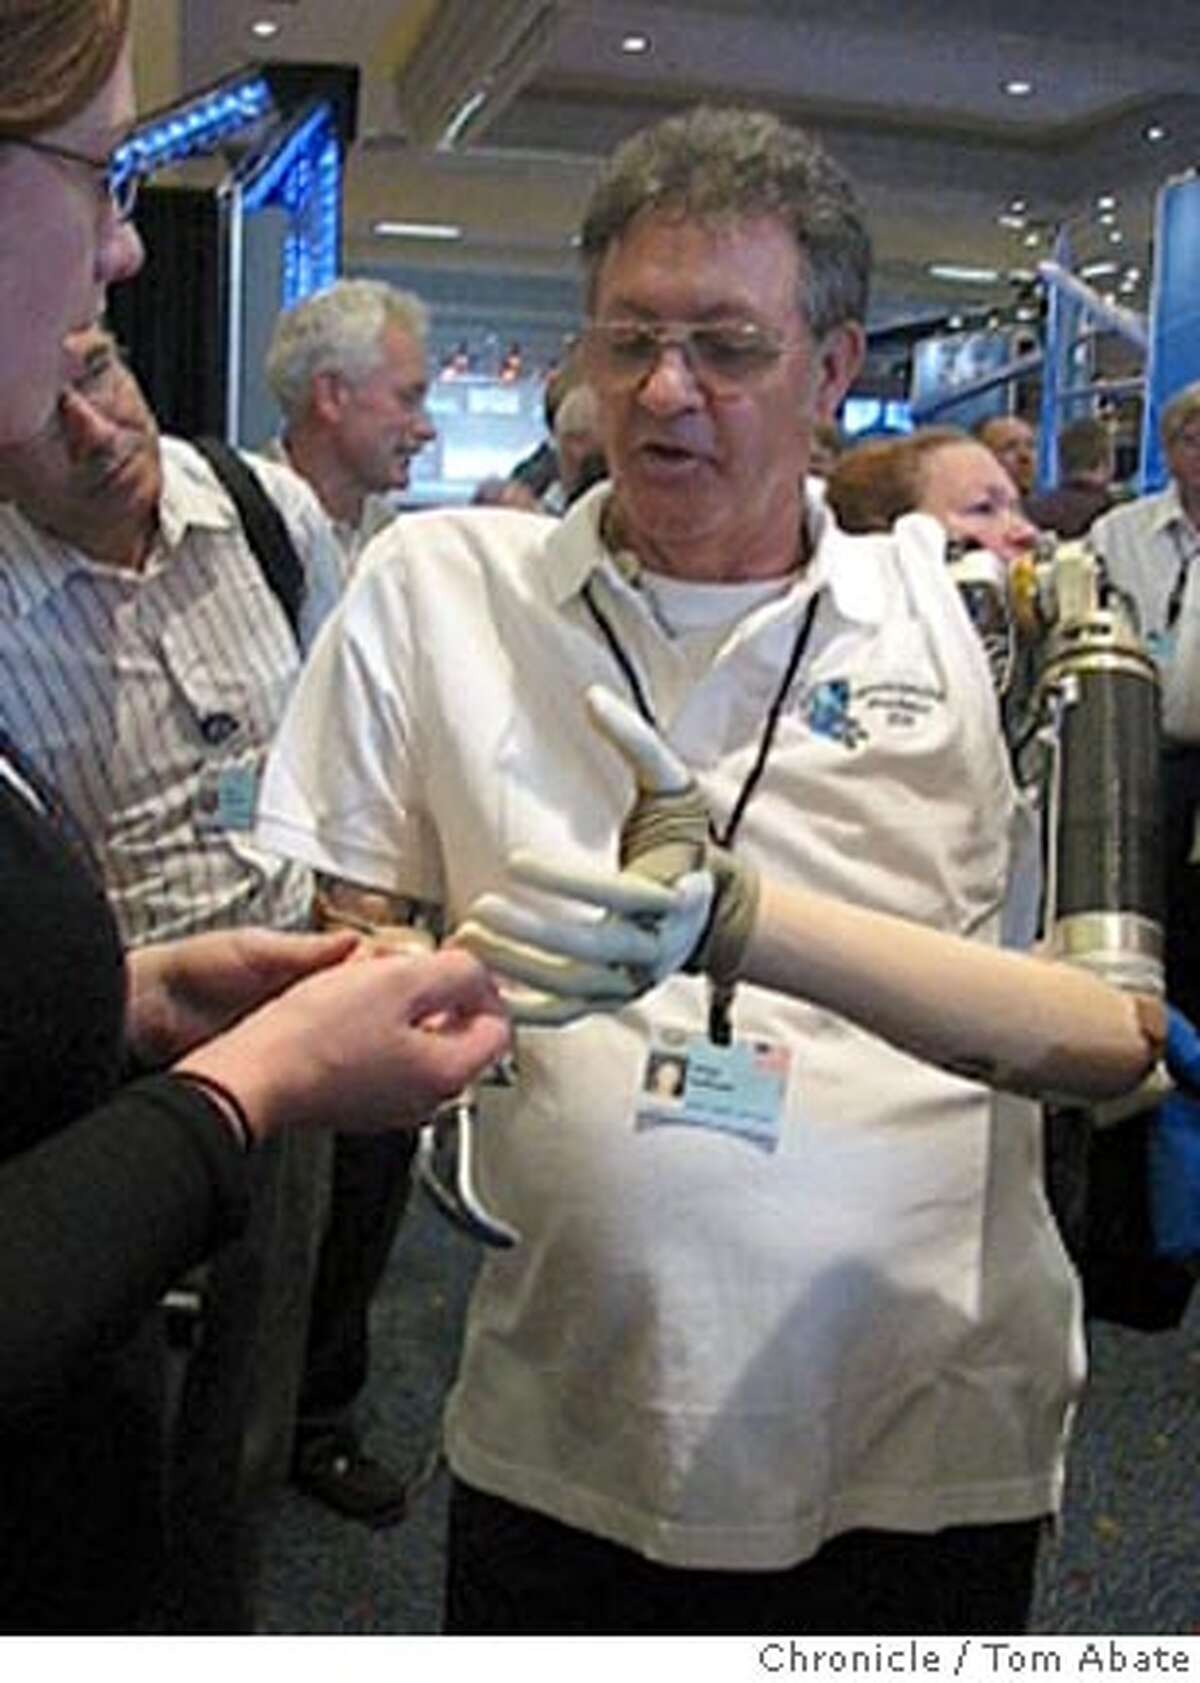 DARPA is developing more lifelike prosthetic limbs. BY TOM ABATE/THE CHRONICLE EDS NOTE: TAKEN FROM VIDEO; CAN'T RUN TOO BIG. Ran on: 08-26-2007 DARPA is developing more-realistic prosthetic limbs, an aspect of war that increasingly afflicts civilians as well as combatants.